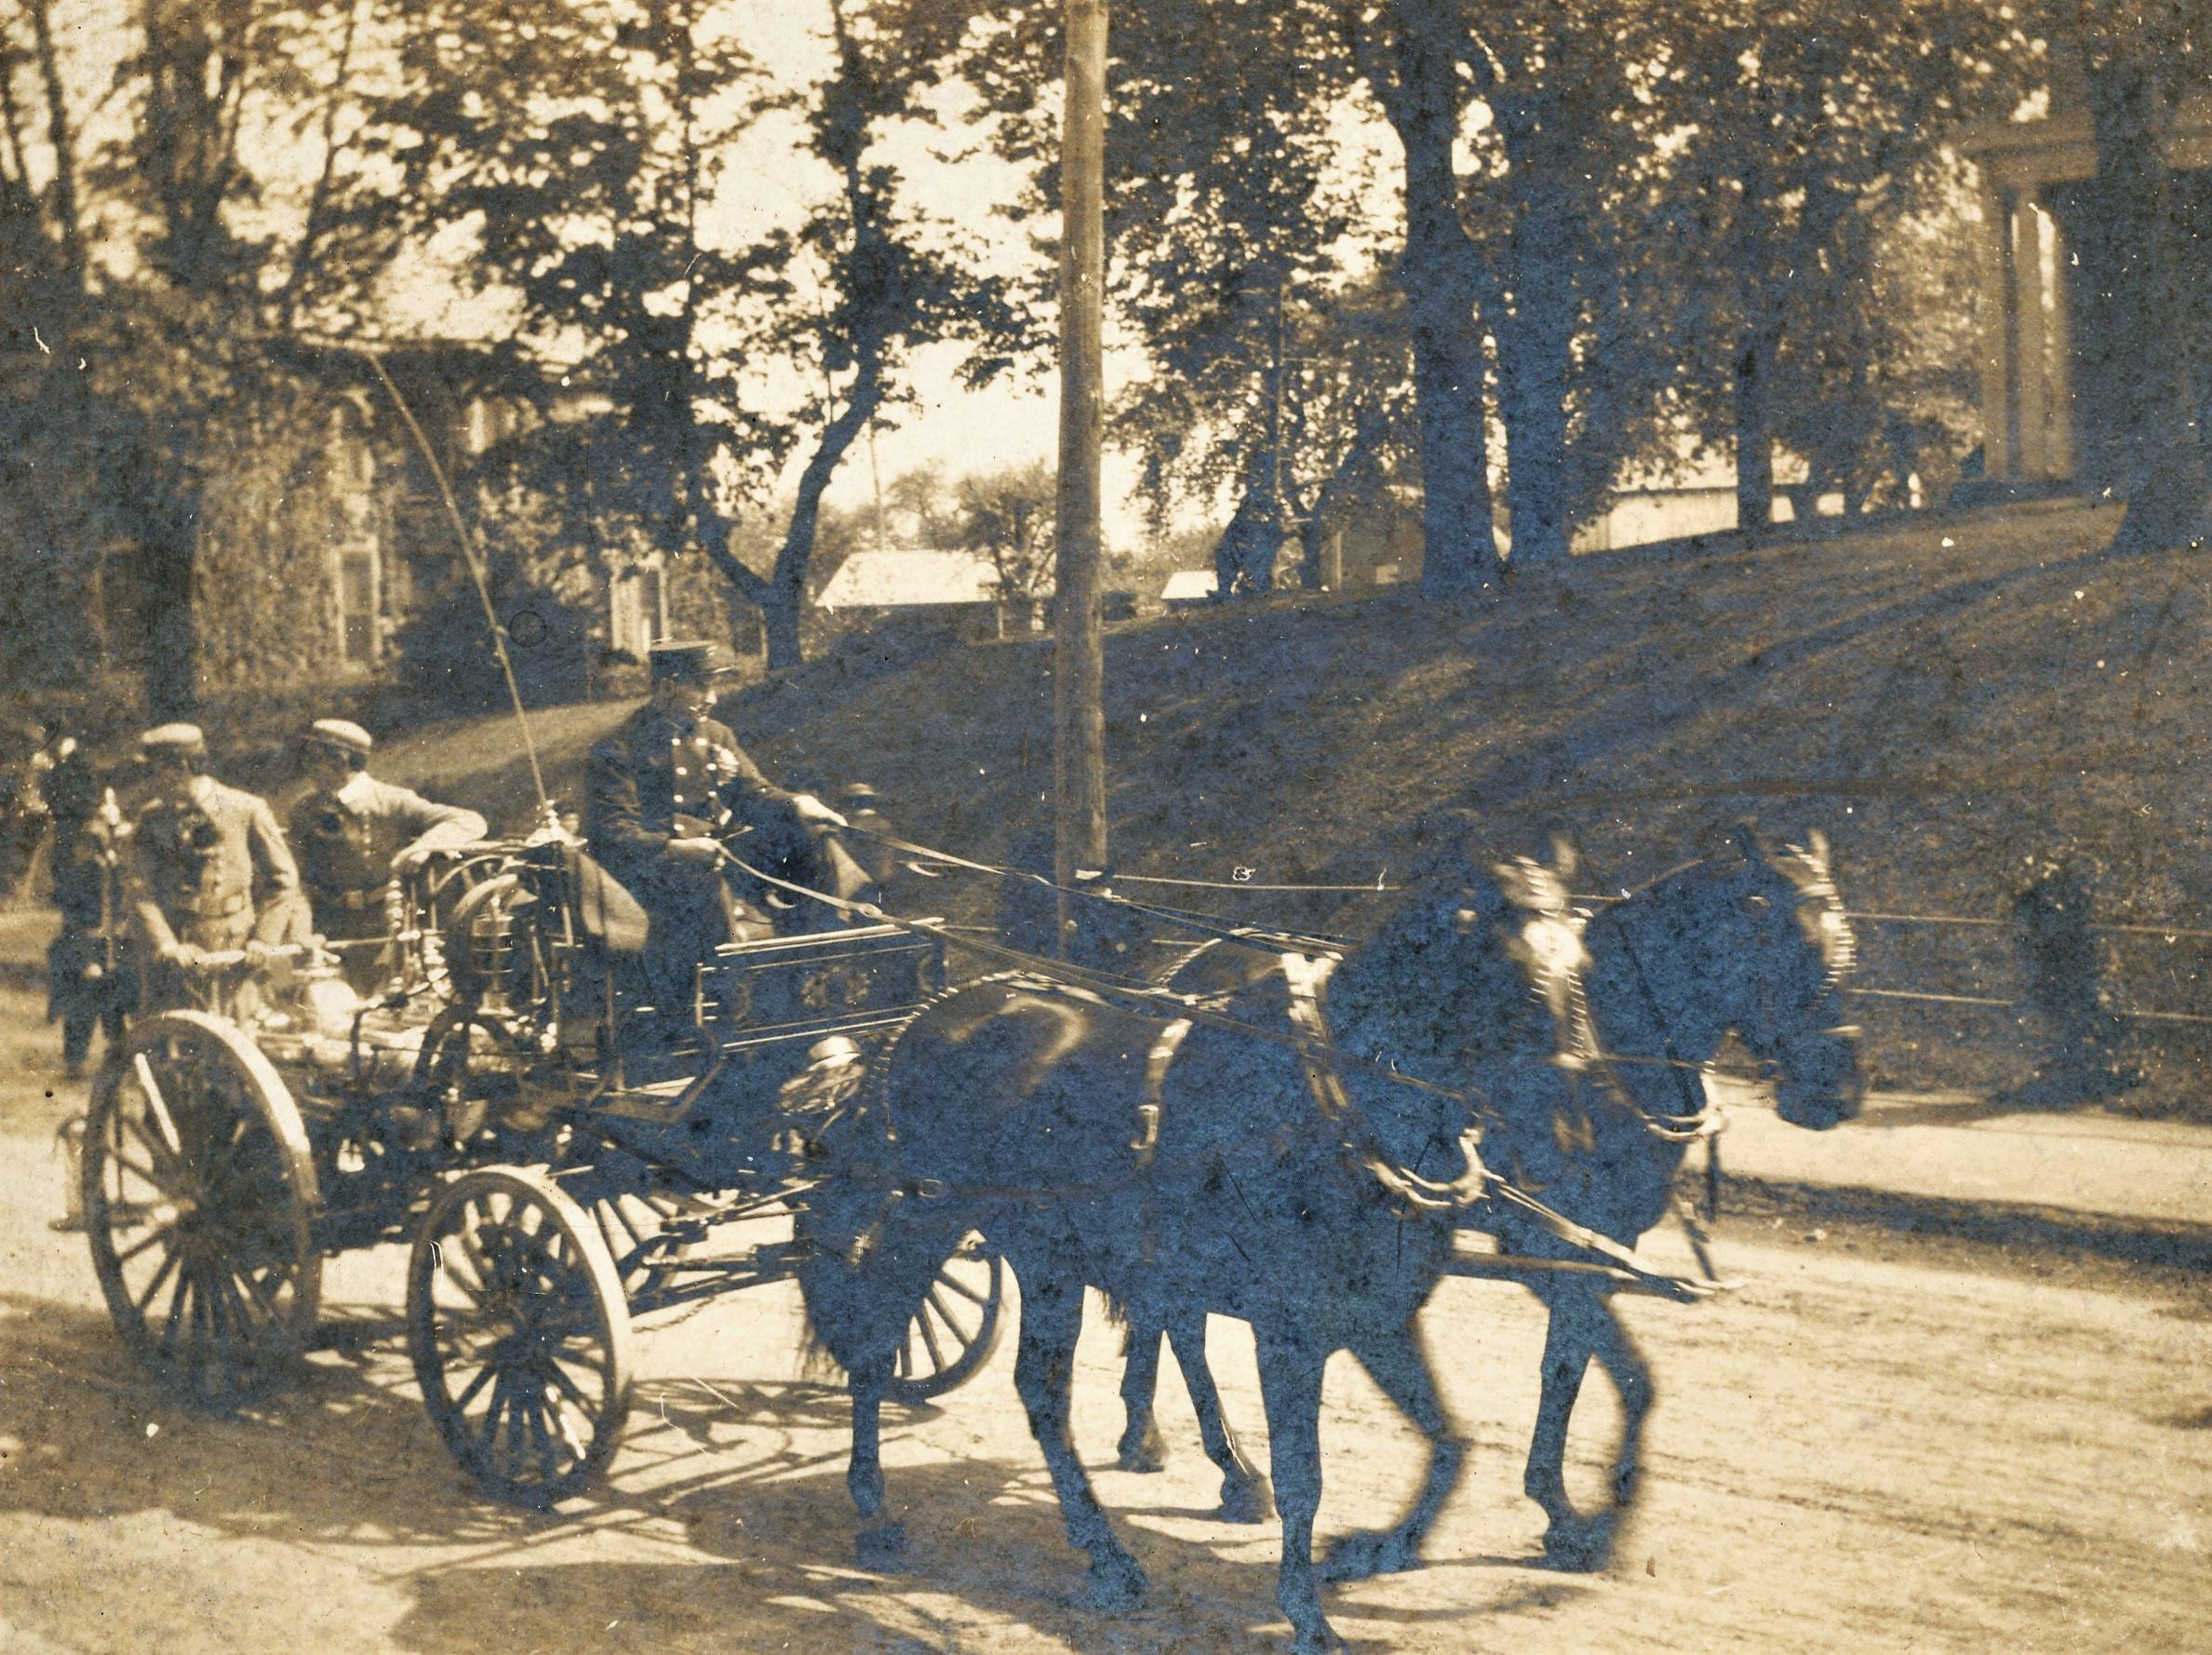 The two black horses pulling the 1902 Holloway Chemical Wagon of the Junior H. & T. Co. No. 2 on North Main Street in Chambersburg.